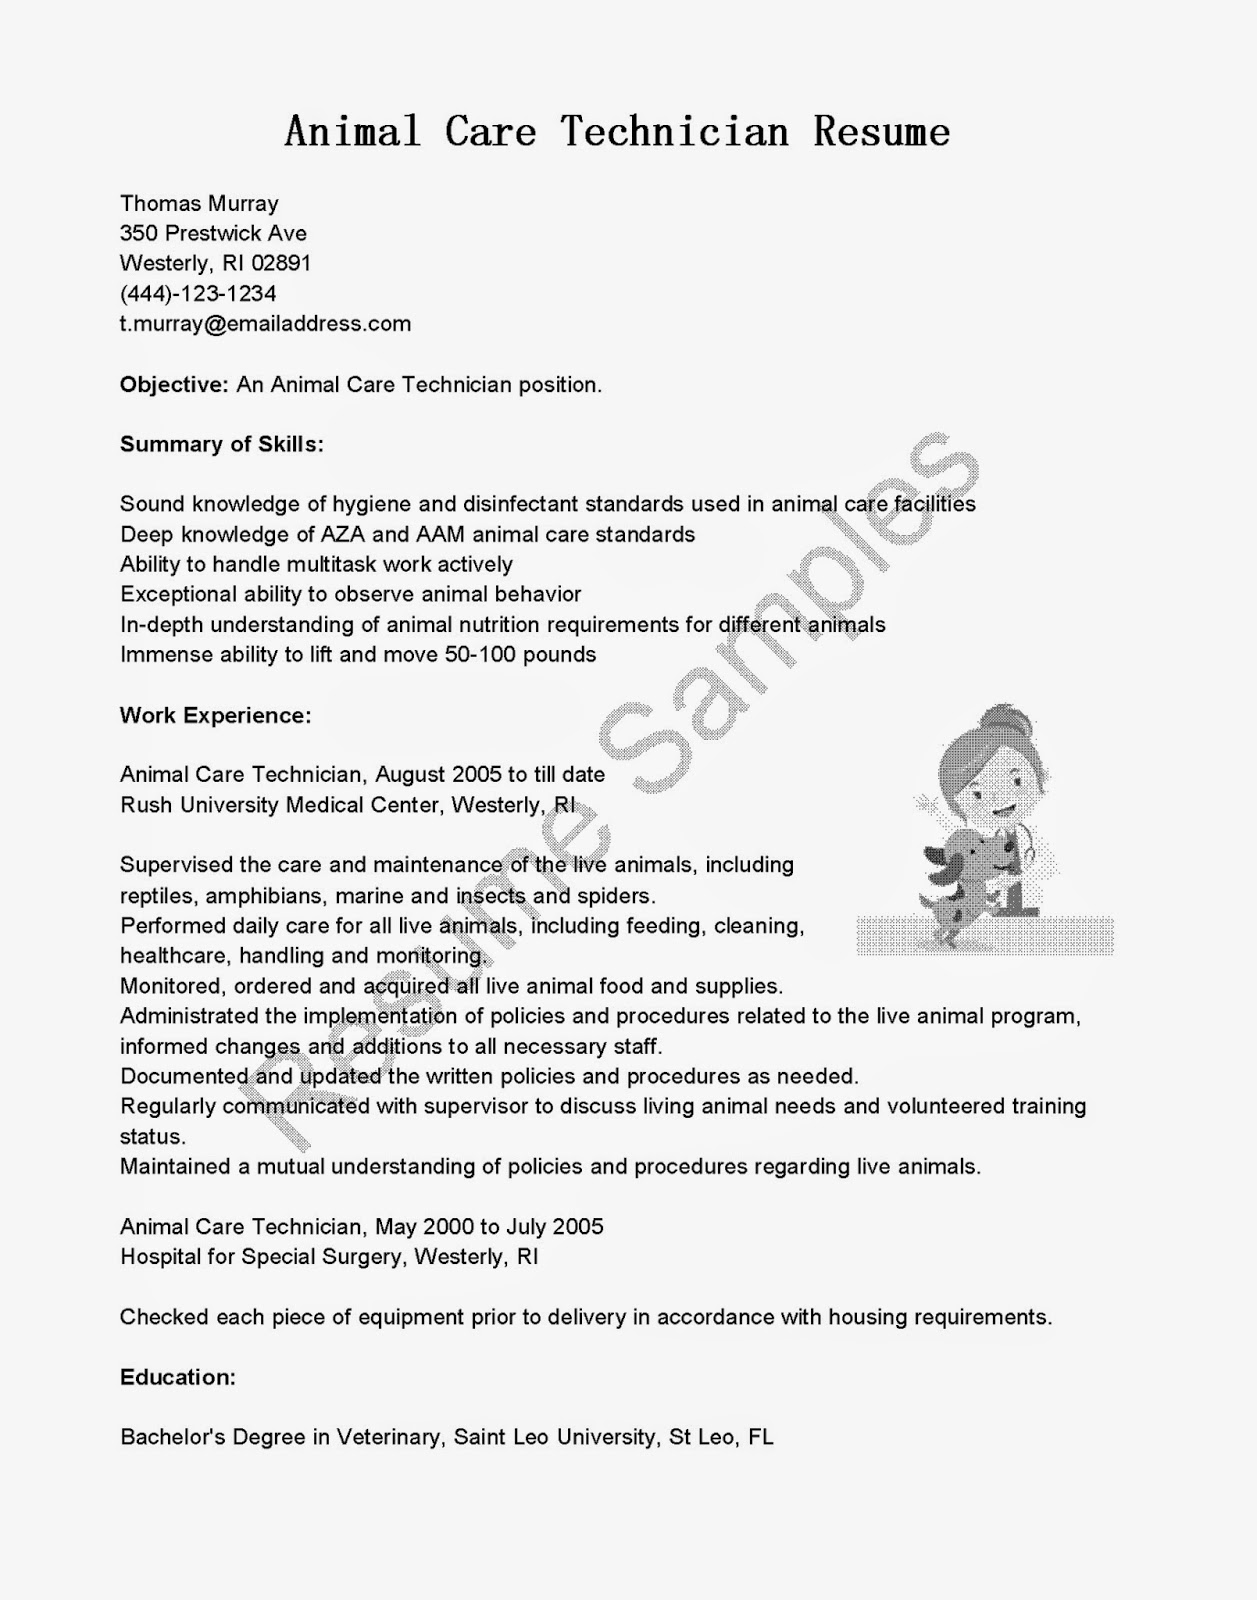 Resume samples animal care technician resume sample for Cover letter for working with animals